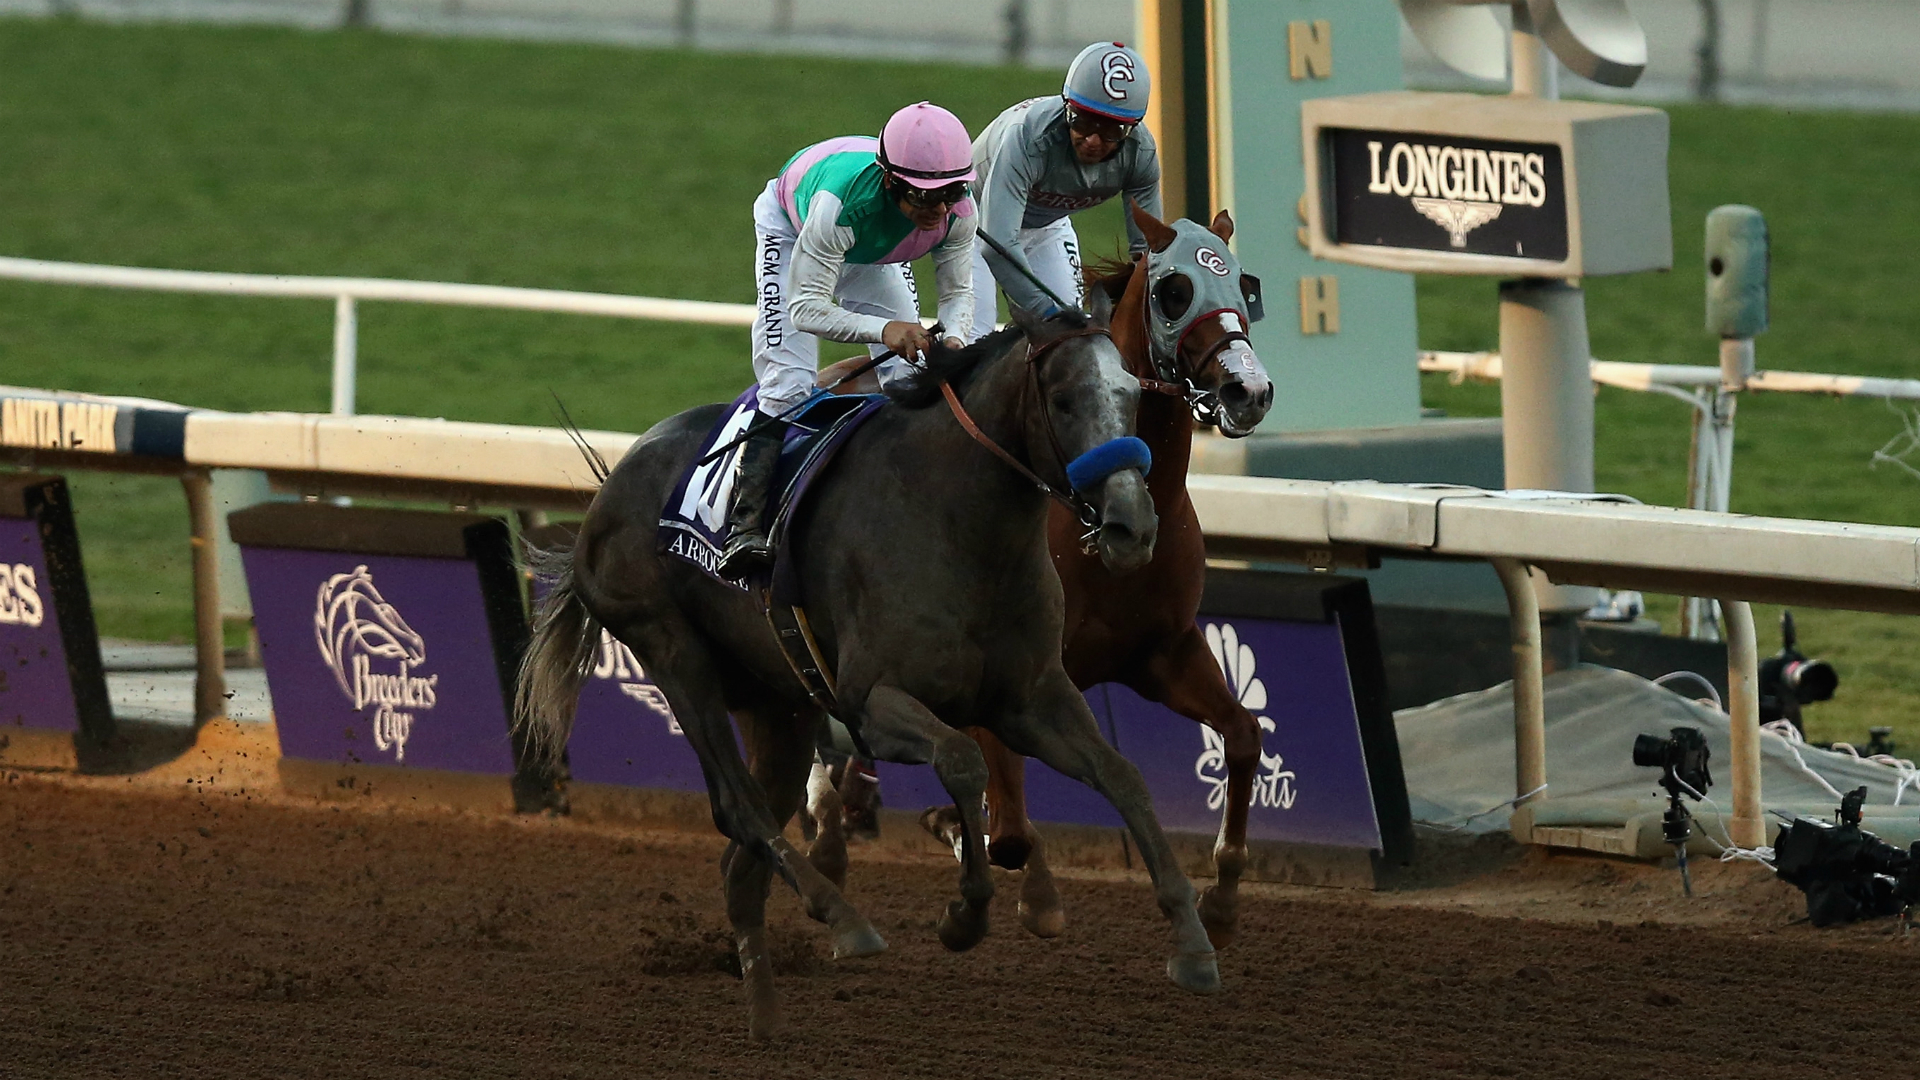 Arrogate, left, with Mike Smith up, won the Breeders' Cup Classic over California Chrome Saturday at Santa Anita. /Getty Images